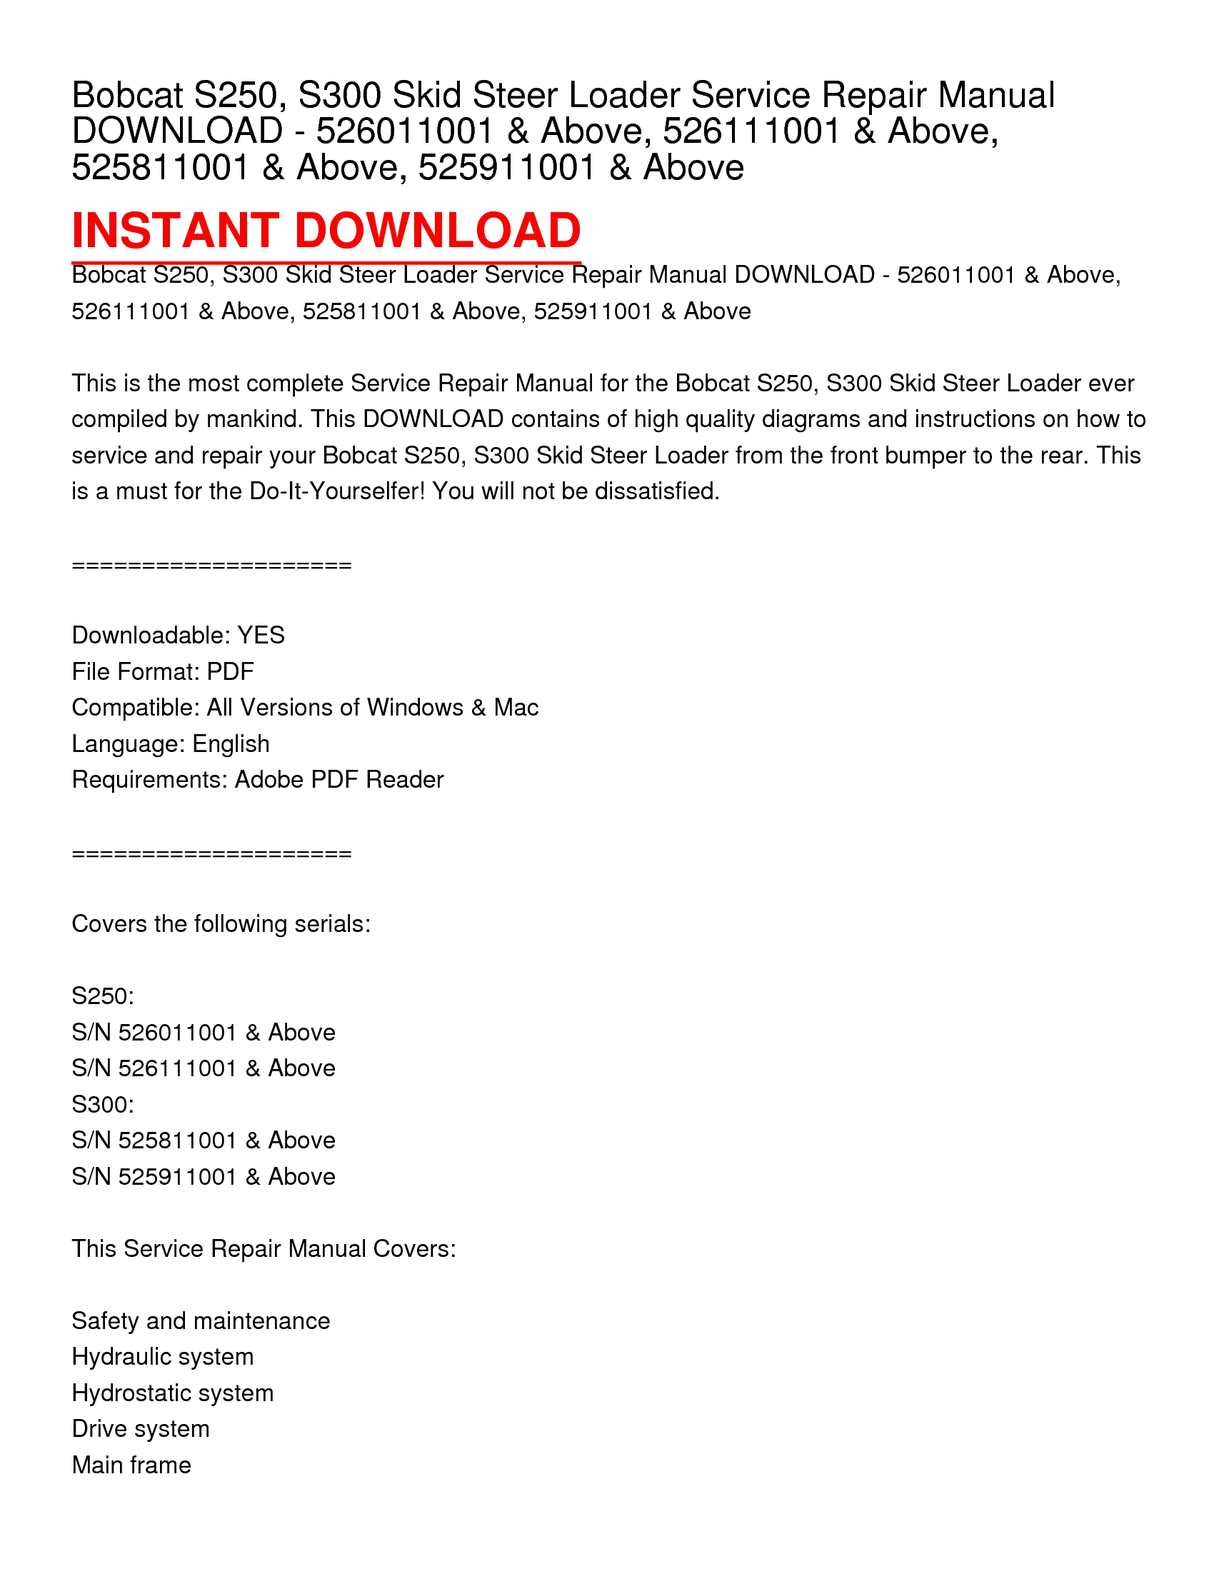 hight resolution of bobcat s250 s300 skid steer loader service repair manual download 526011001 above 526111001 above 525811001 above 525911001 above